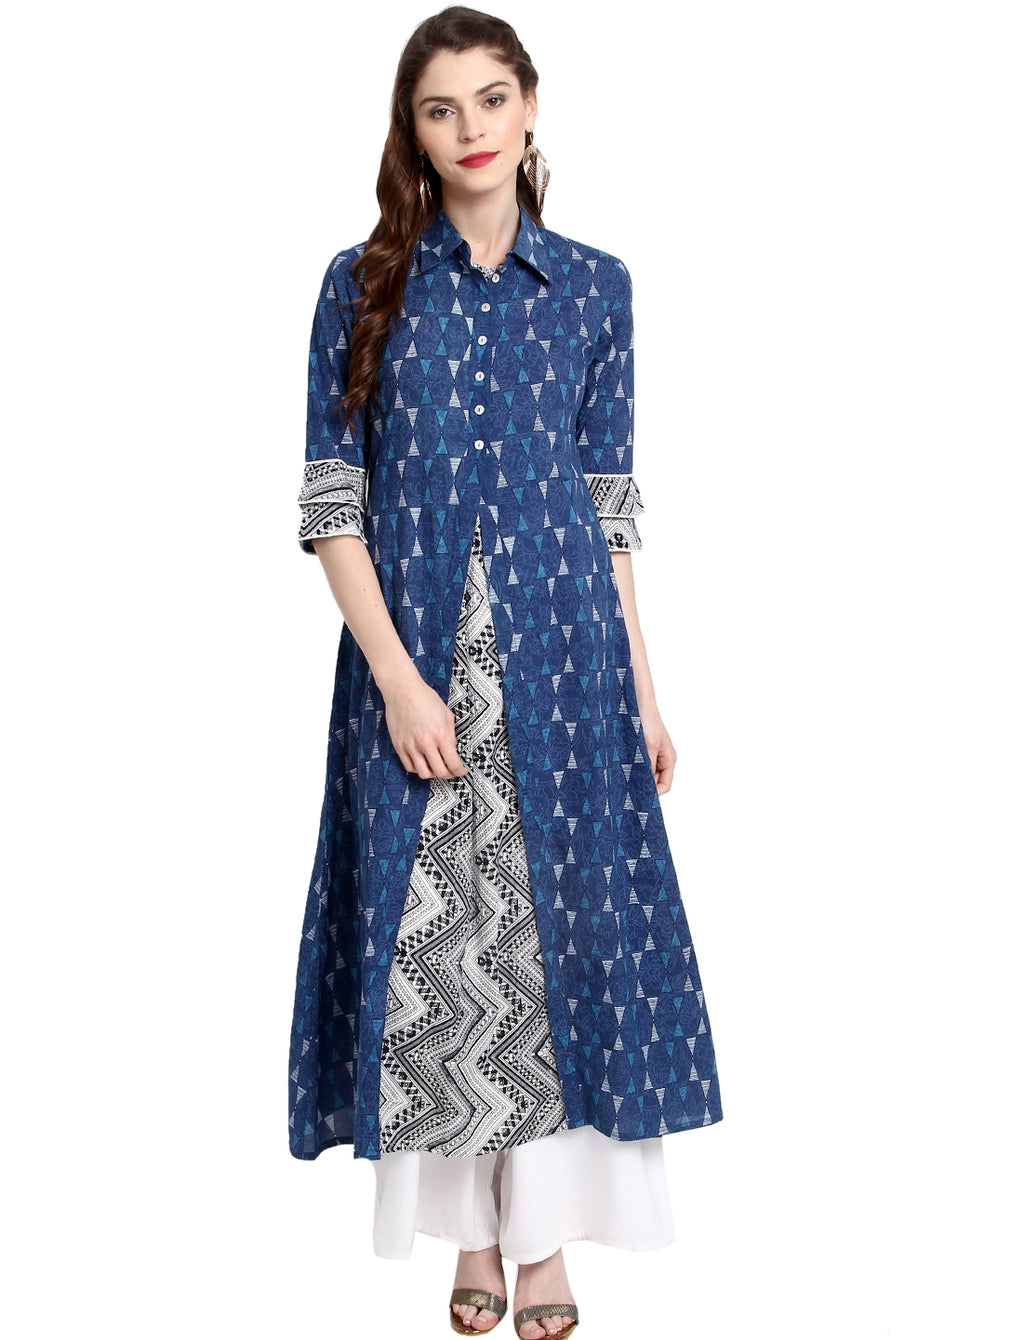 Blue Color Cotton Readymade Party Wear Kurtis ( Sizes-36,38,40,42,44) Janasya Catlog SJ-10204